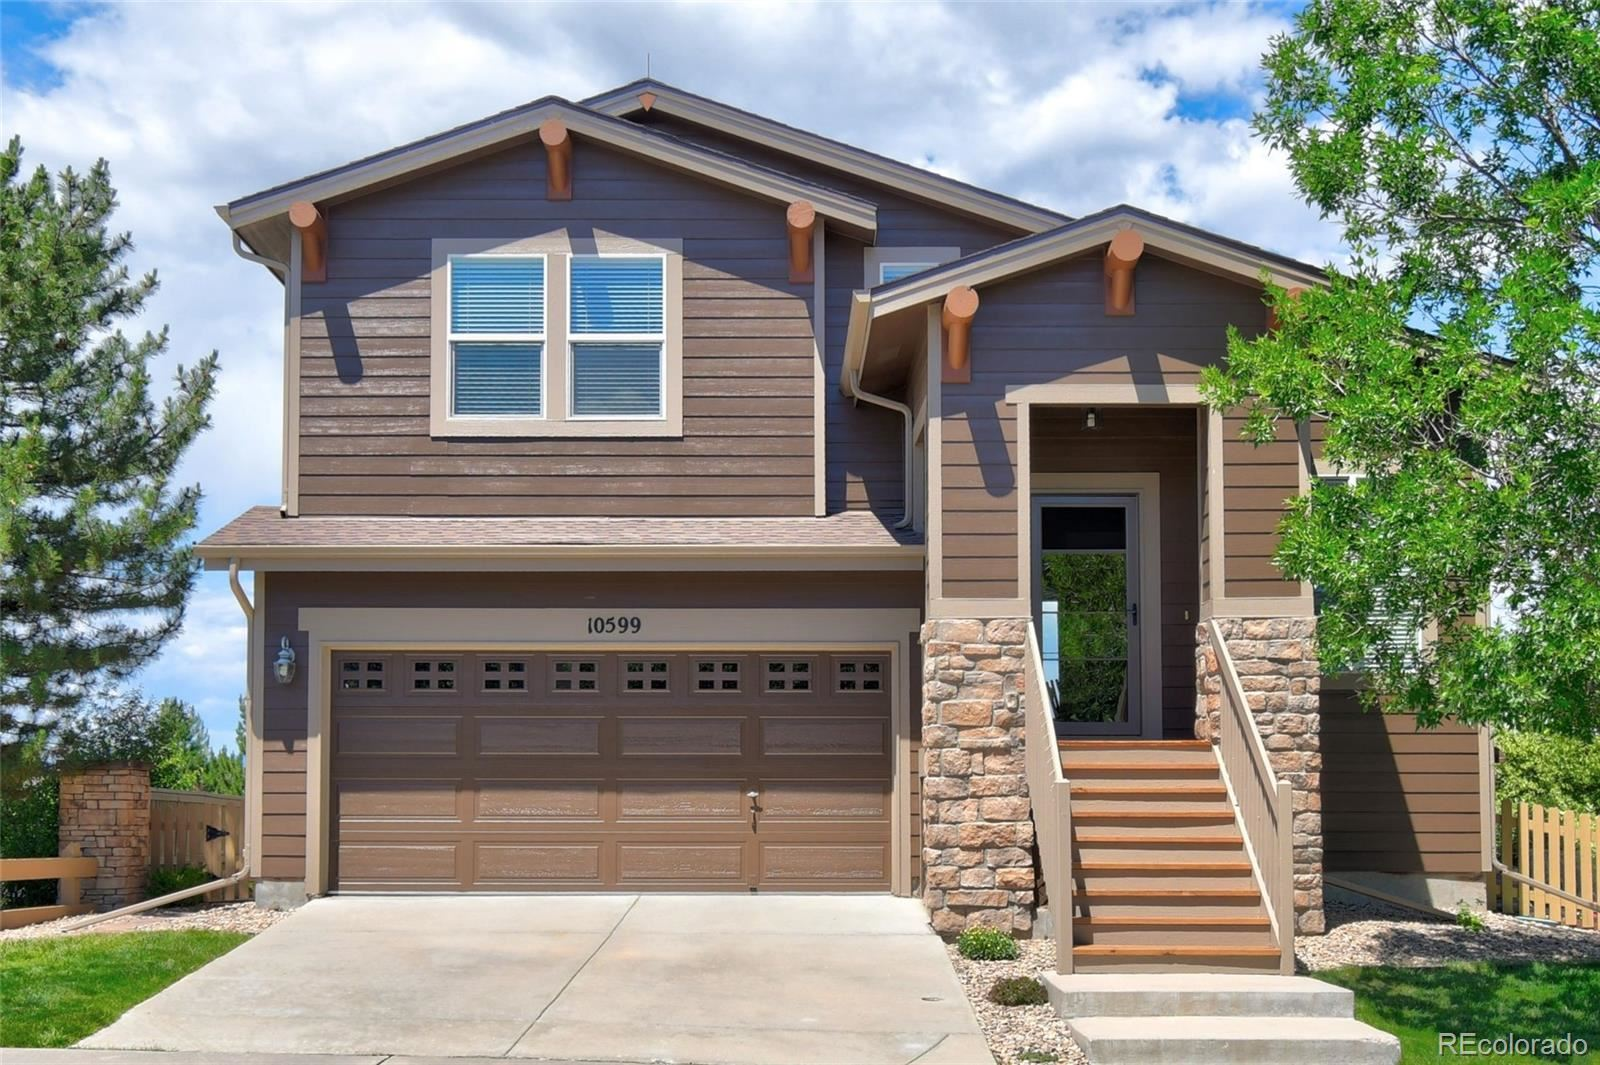 10599 Jewelberry Trail, Highlands Ranch, CO 80130 - #: 9782253